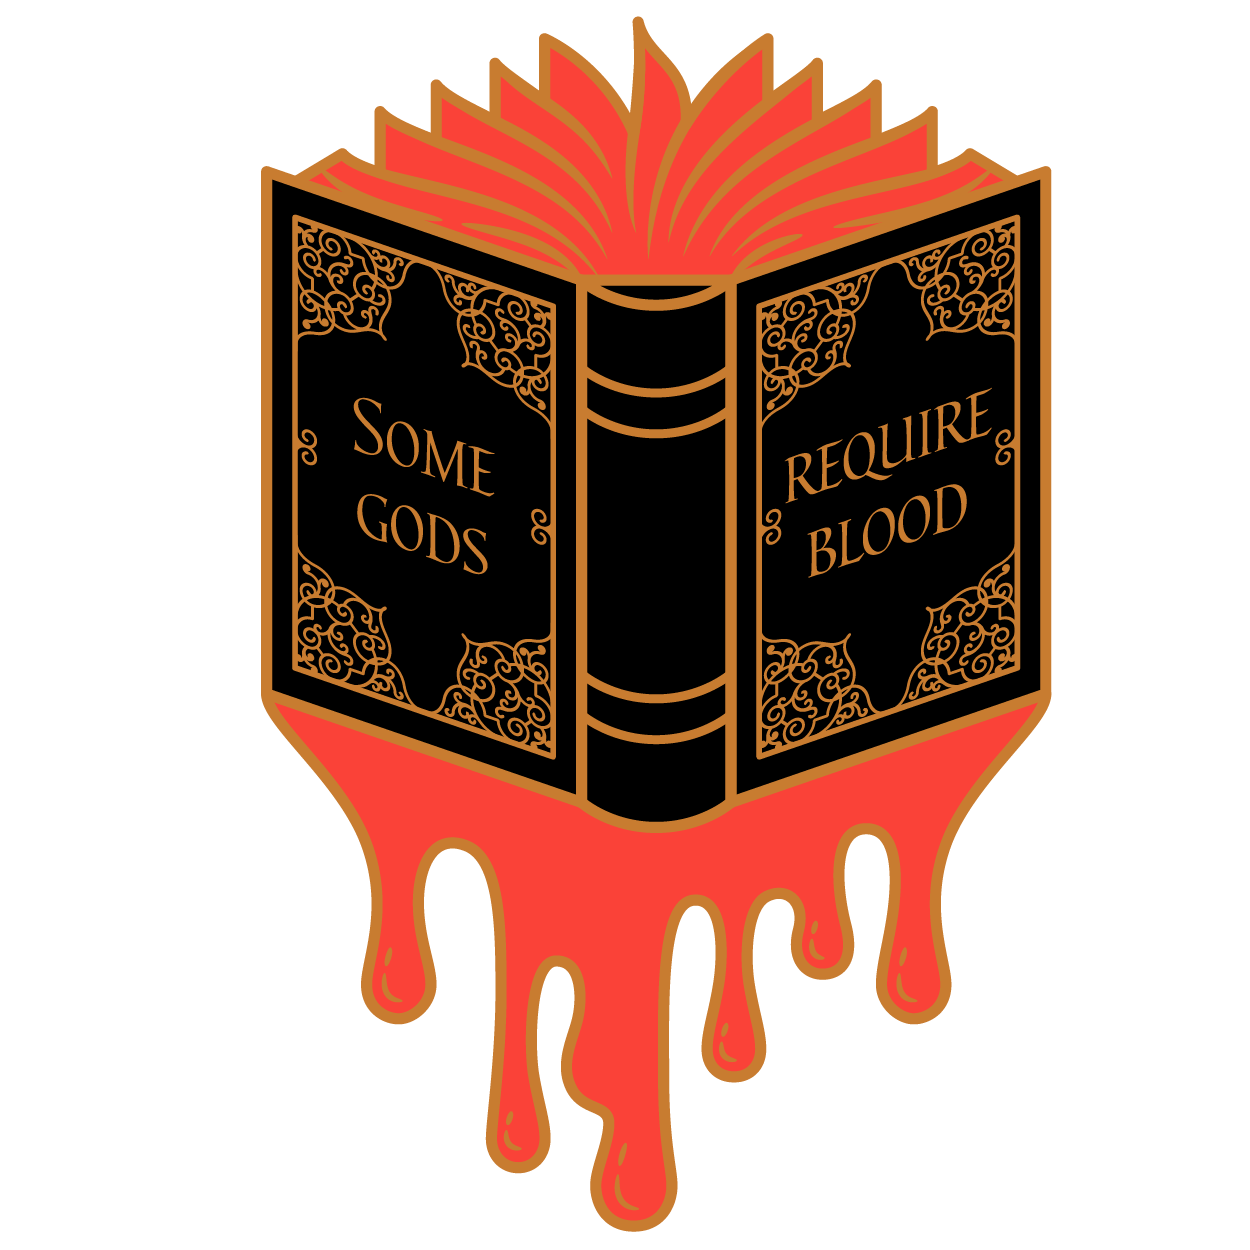 Some Gods Require Blood - Wicked Saints Inspired Enamel Pin